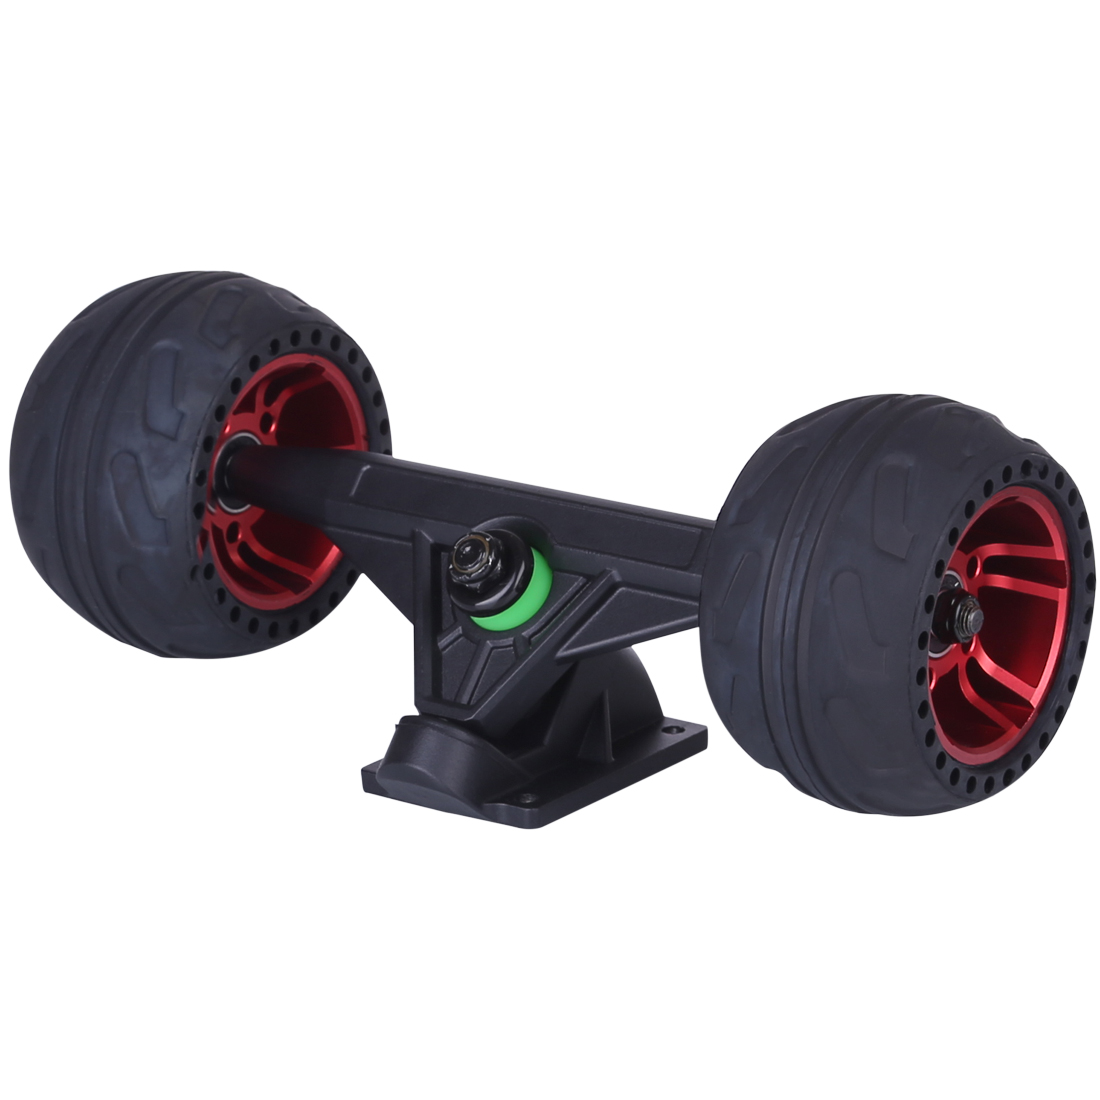 105LMH All Terrain Rubber Wheel With Kingpins Truck - Black/Red